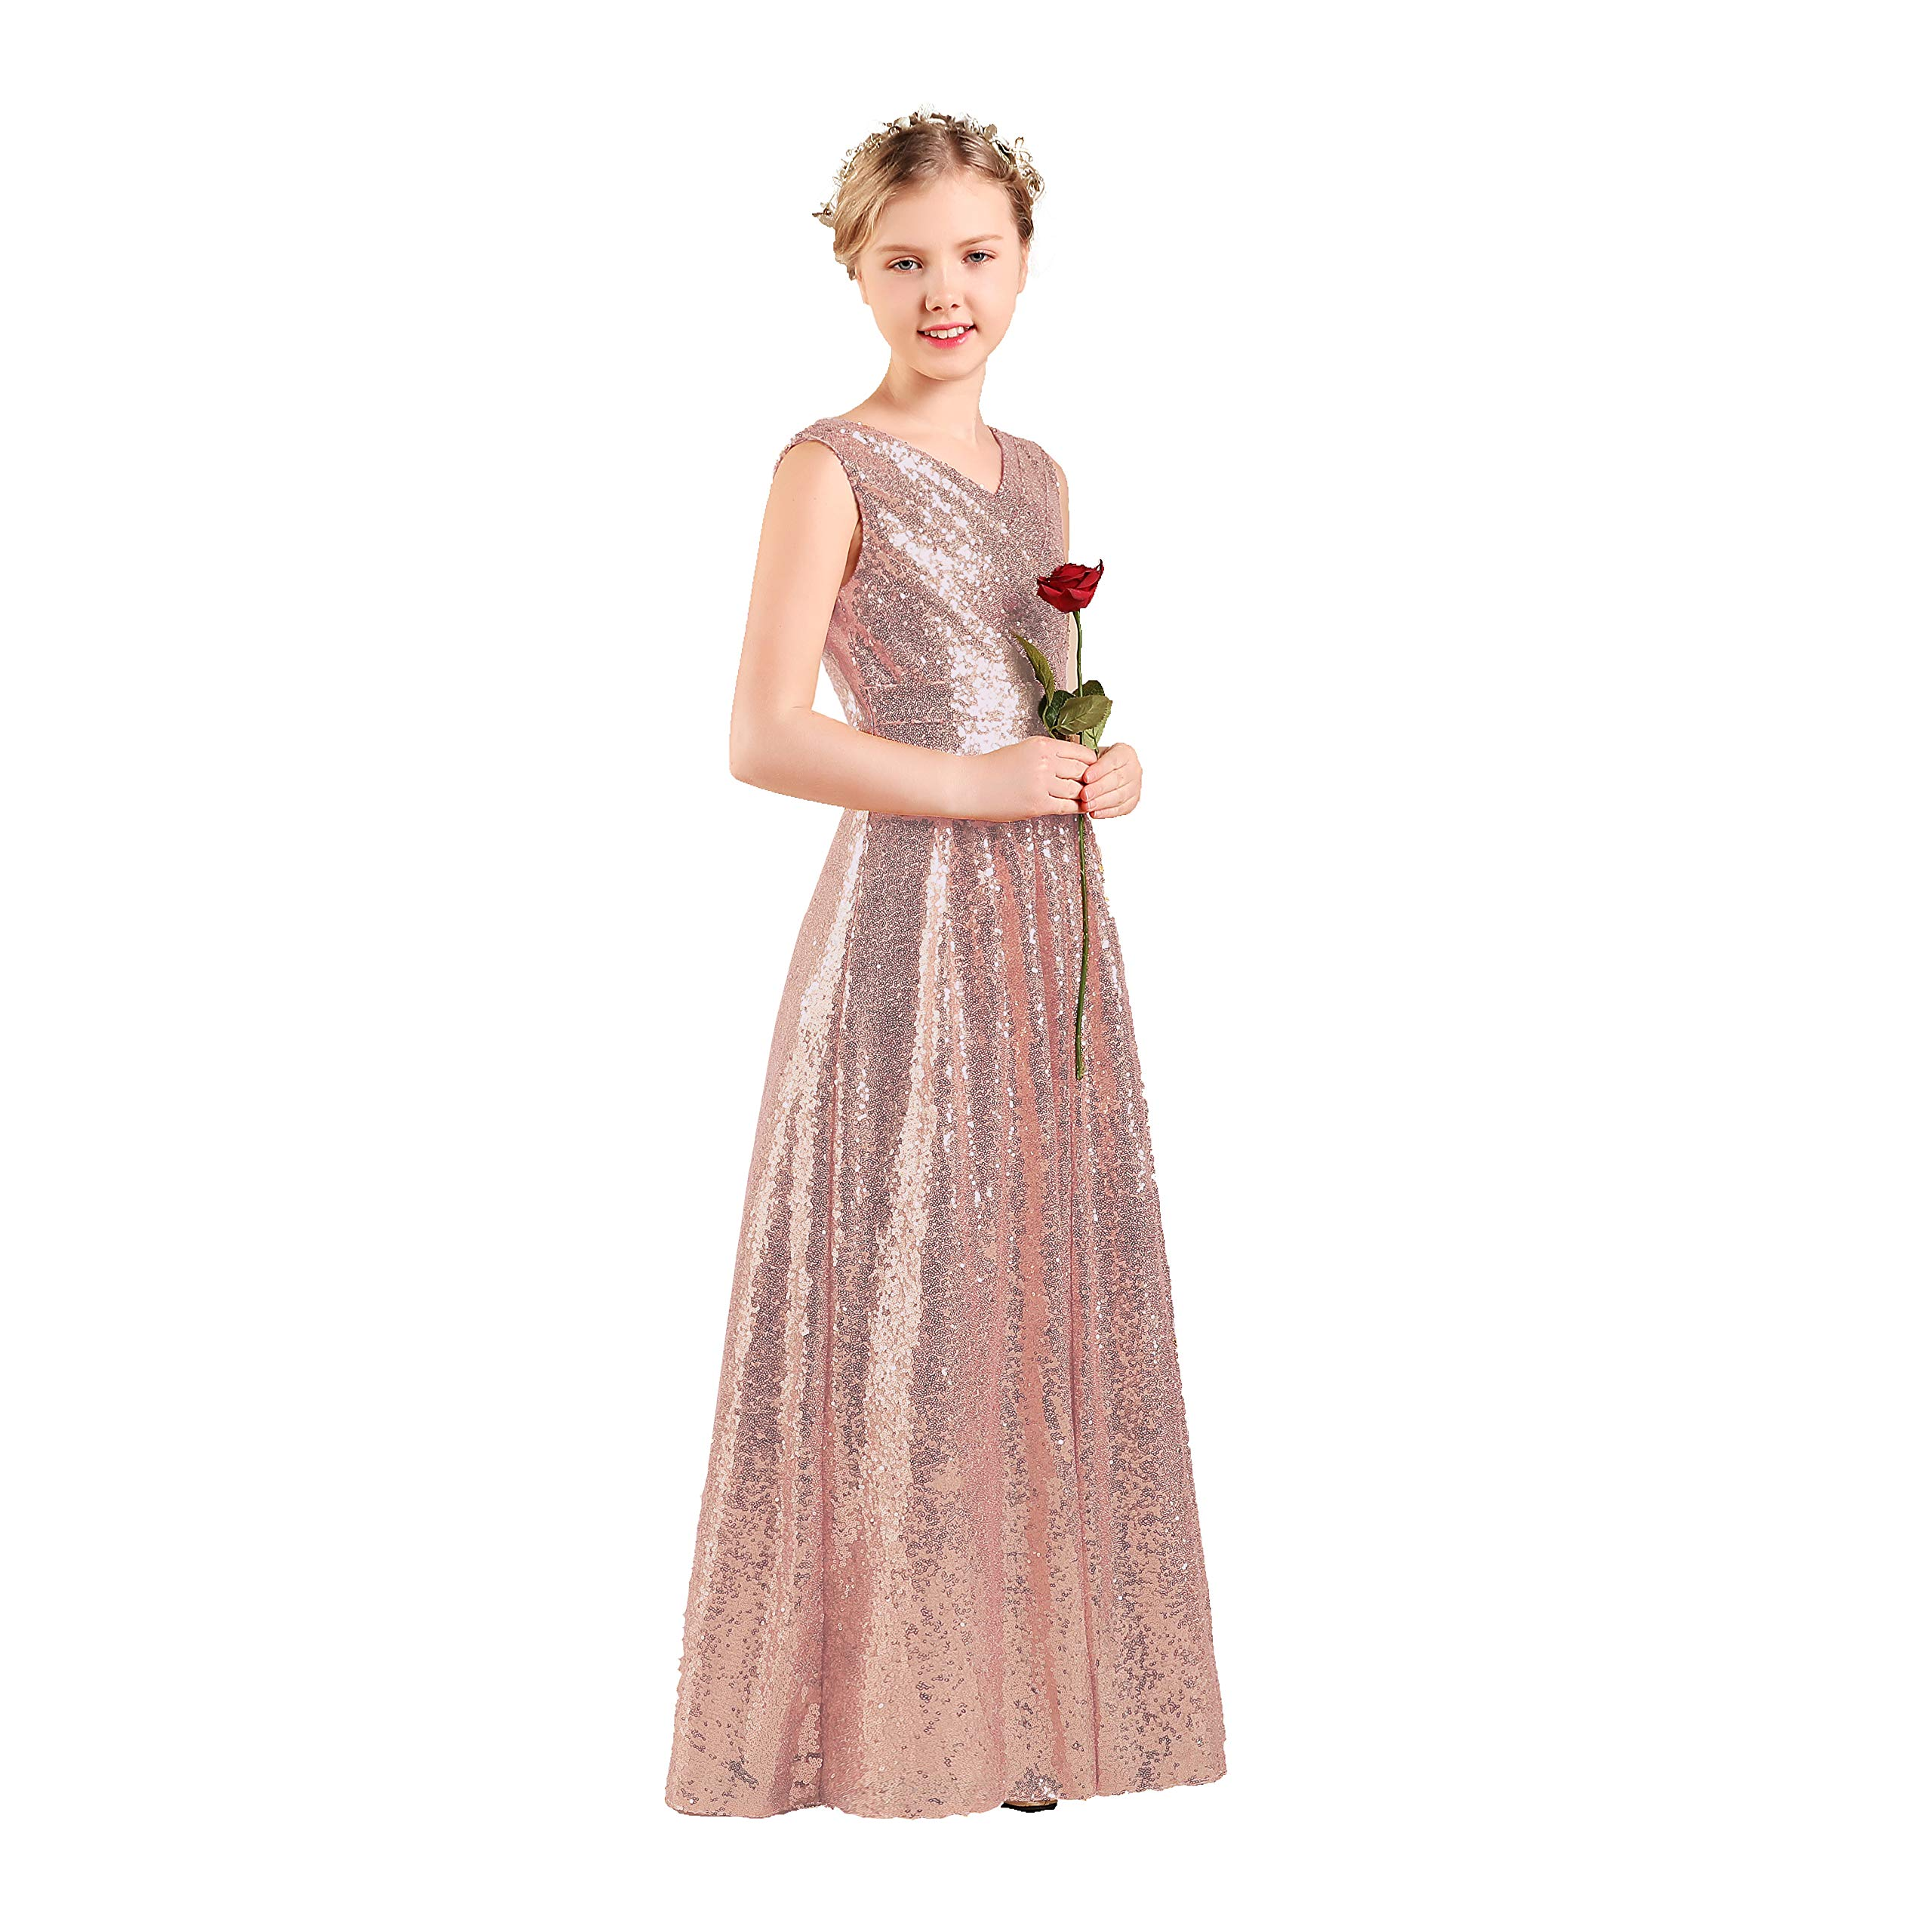 bddbc8dde33 Long Junior Bridesmaid Dress Sequin Flower Girl Dress Rose Gold Formal  Wedding Party Pageant Maxi Dress Dance Ball Gown 10t